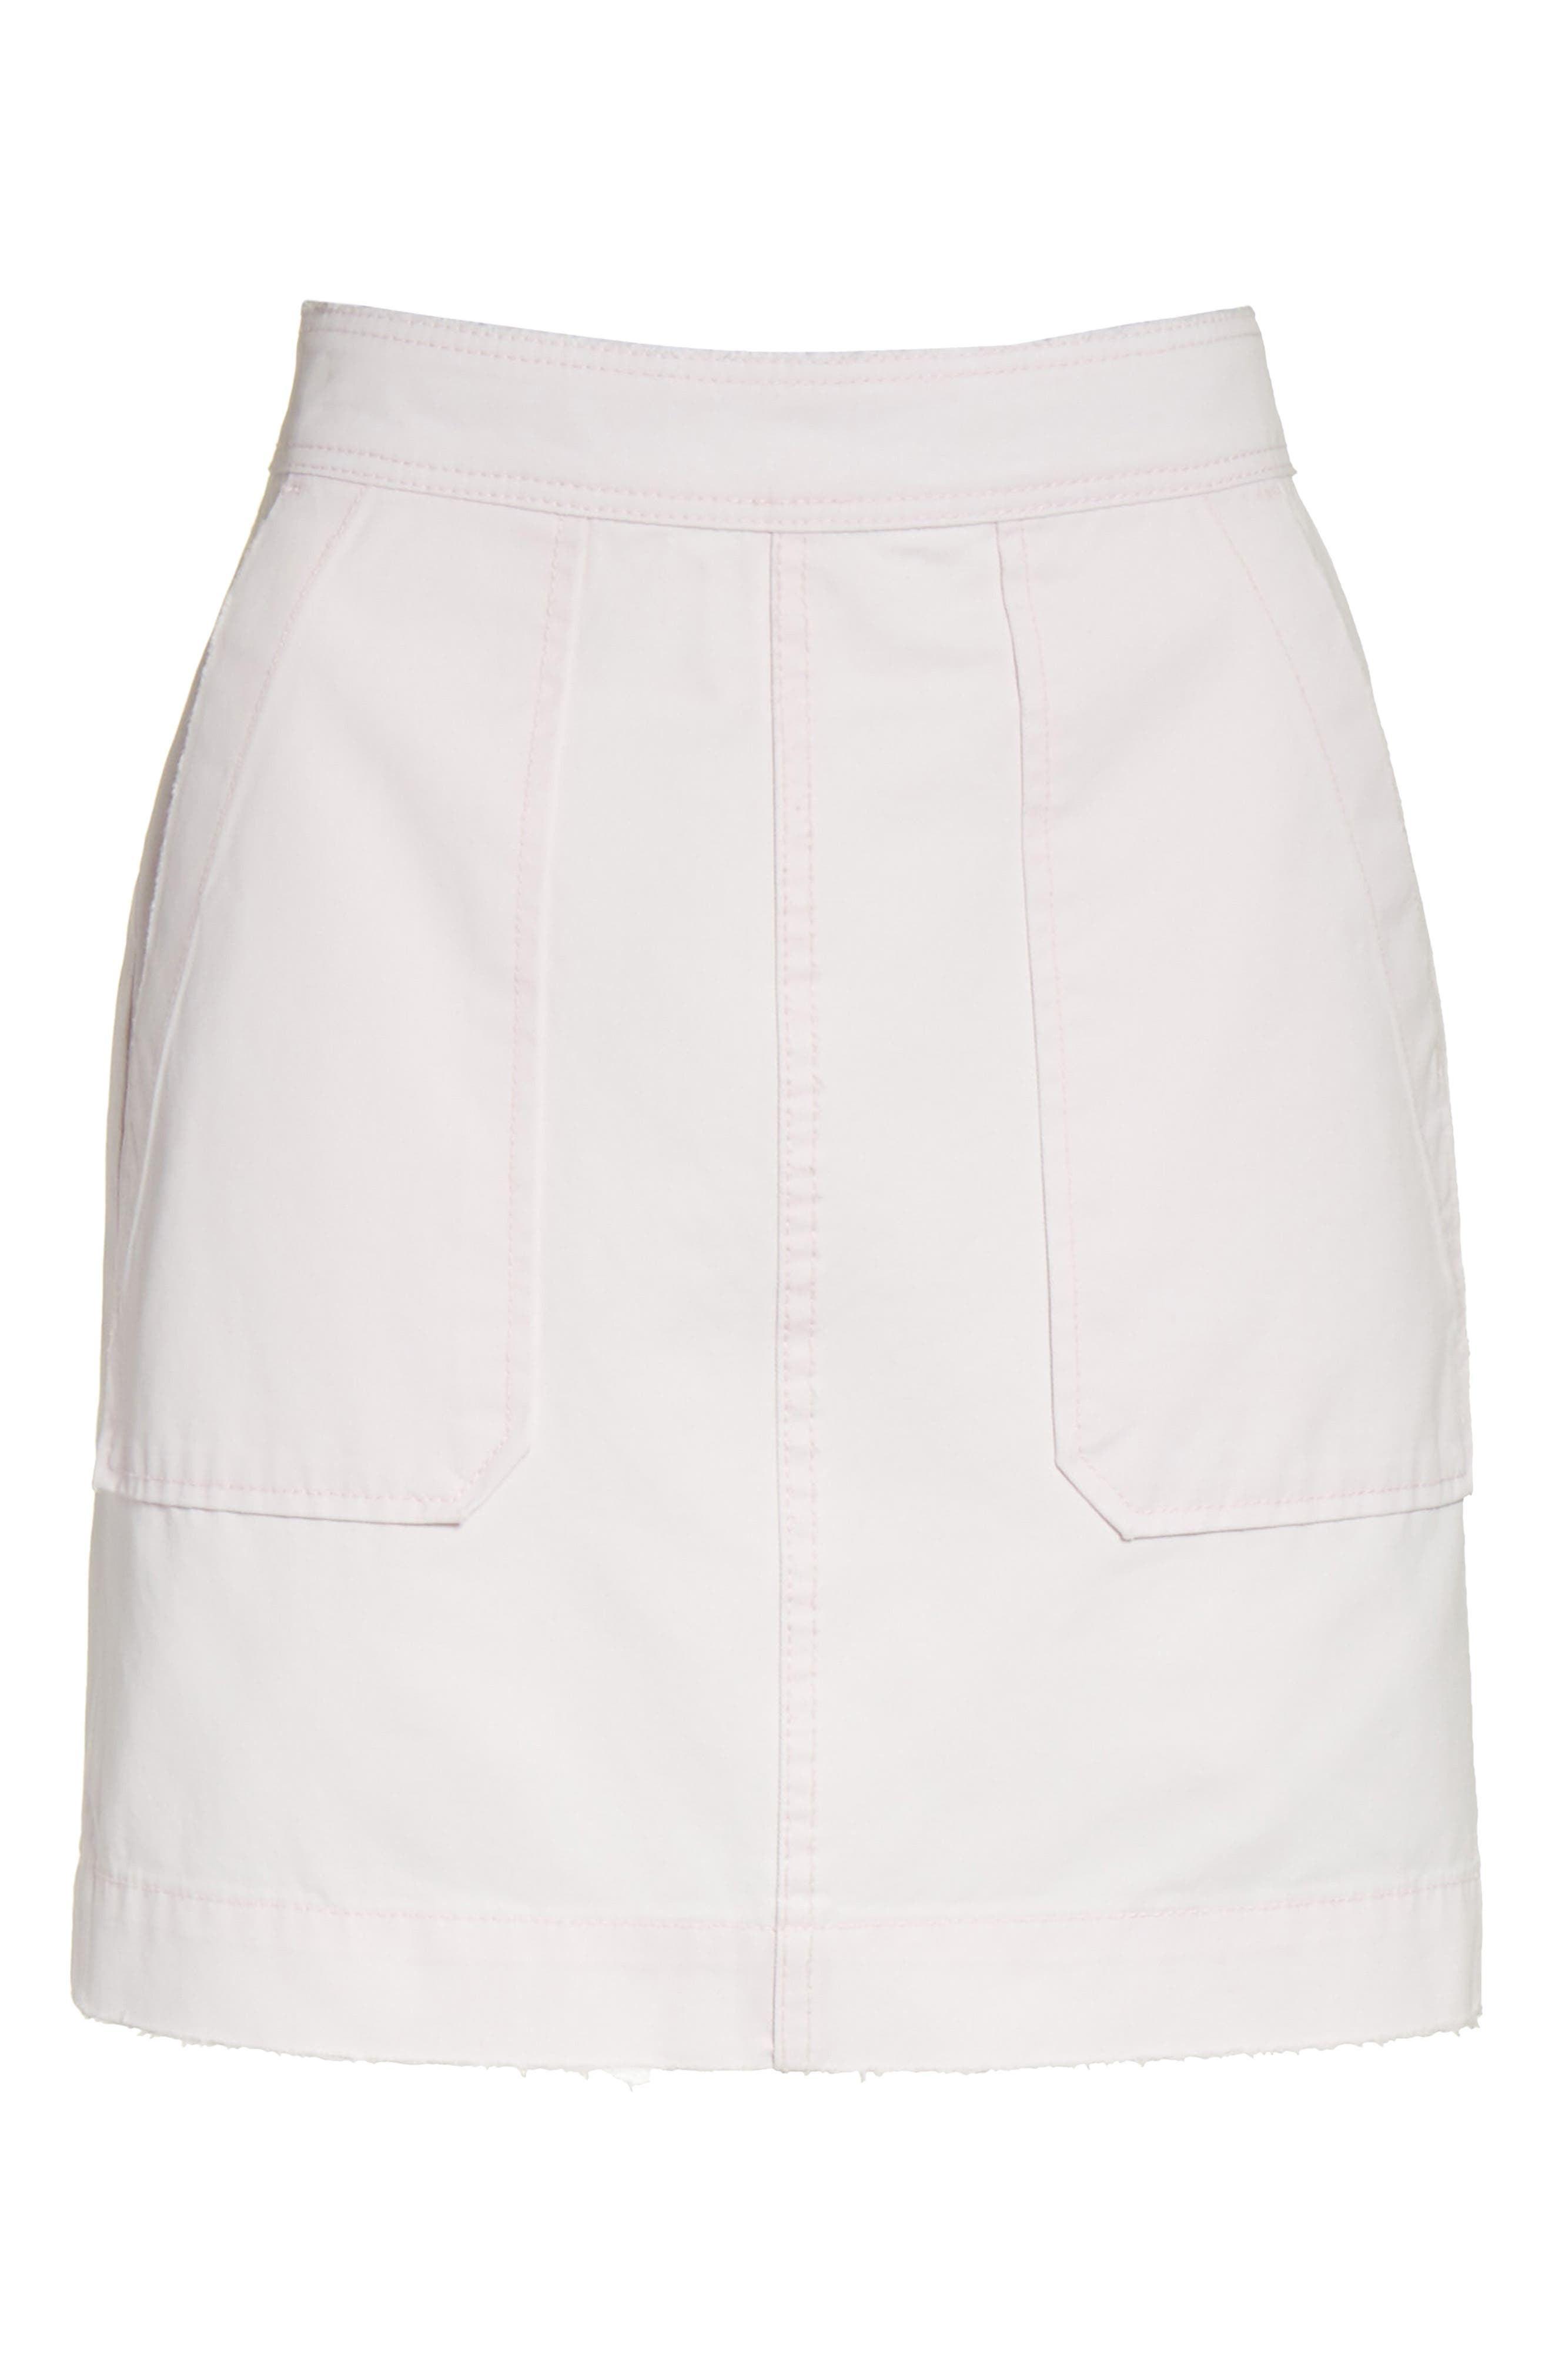 Army Twill Skirt,                             Alternate thumbnail 6, color,                             688